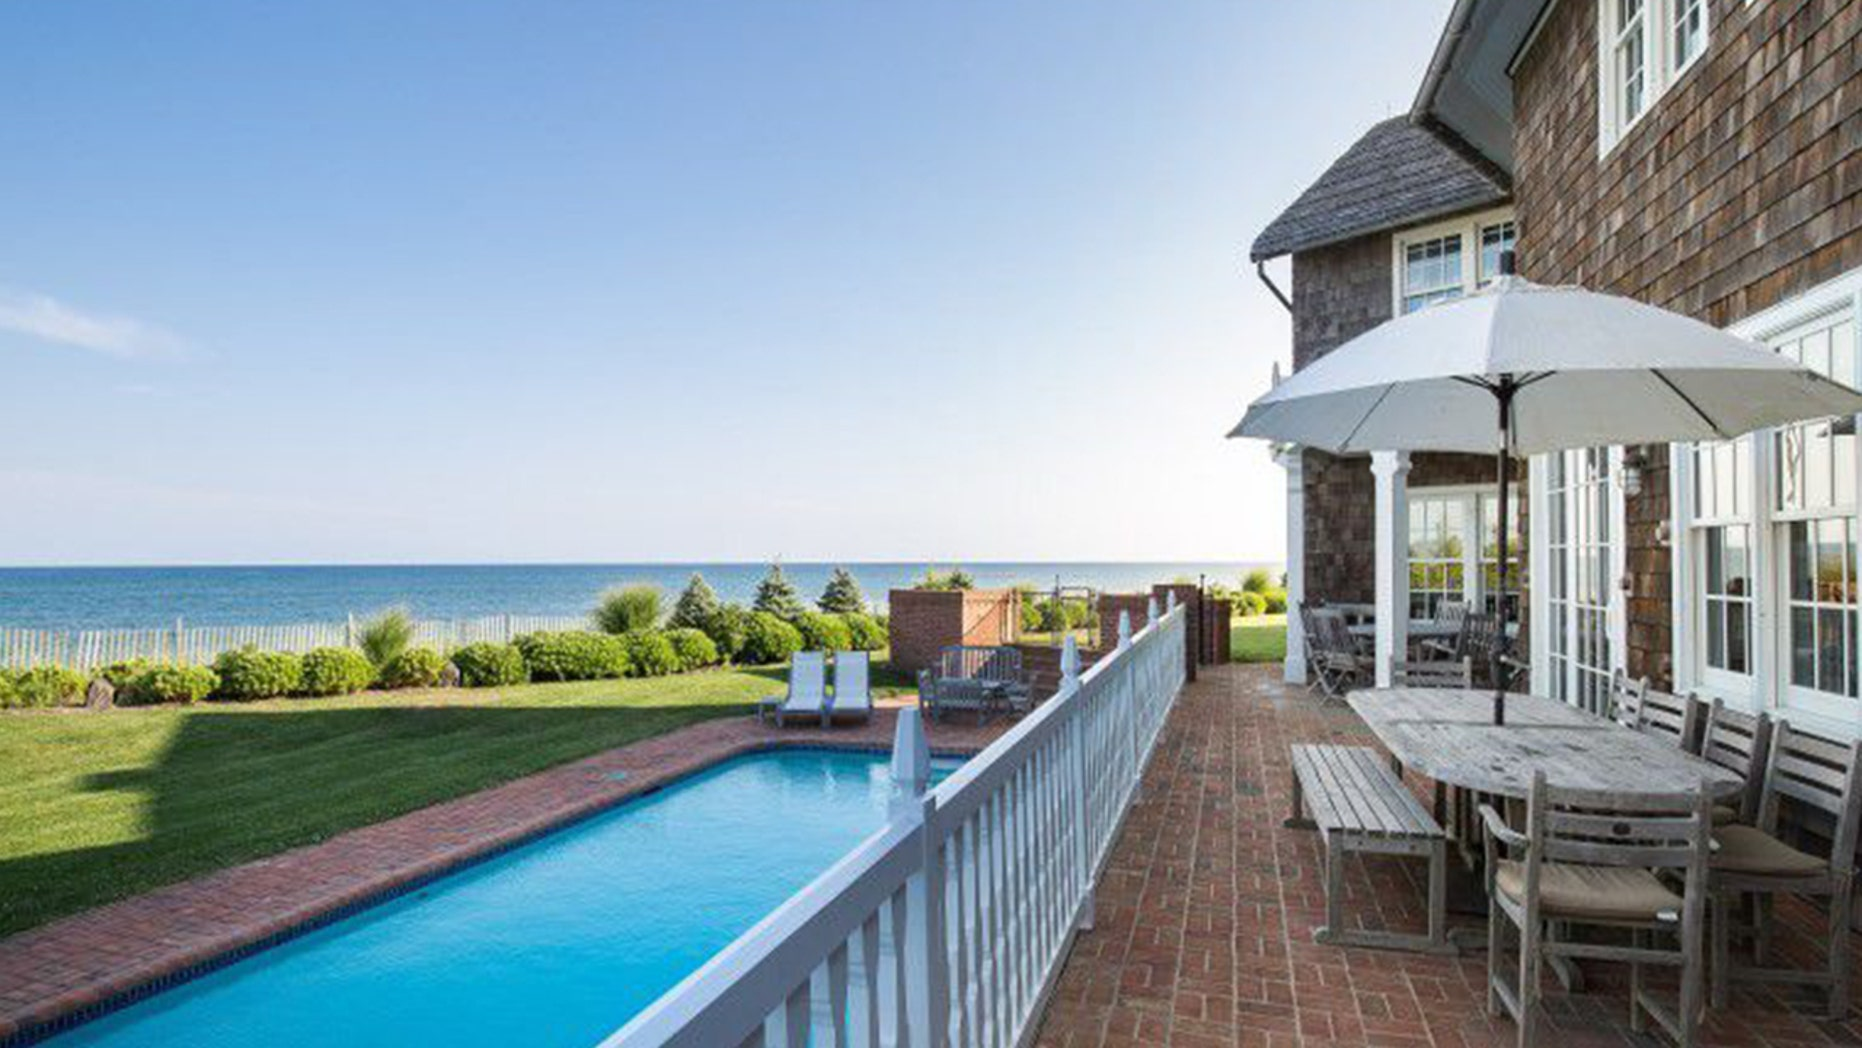 The gorgeous 10,000 square foot property sits on an oceanfront acre.